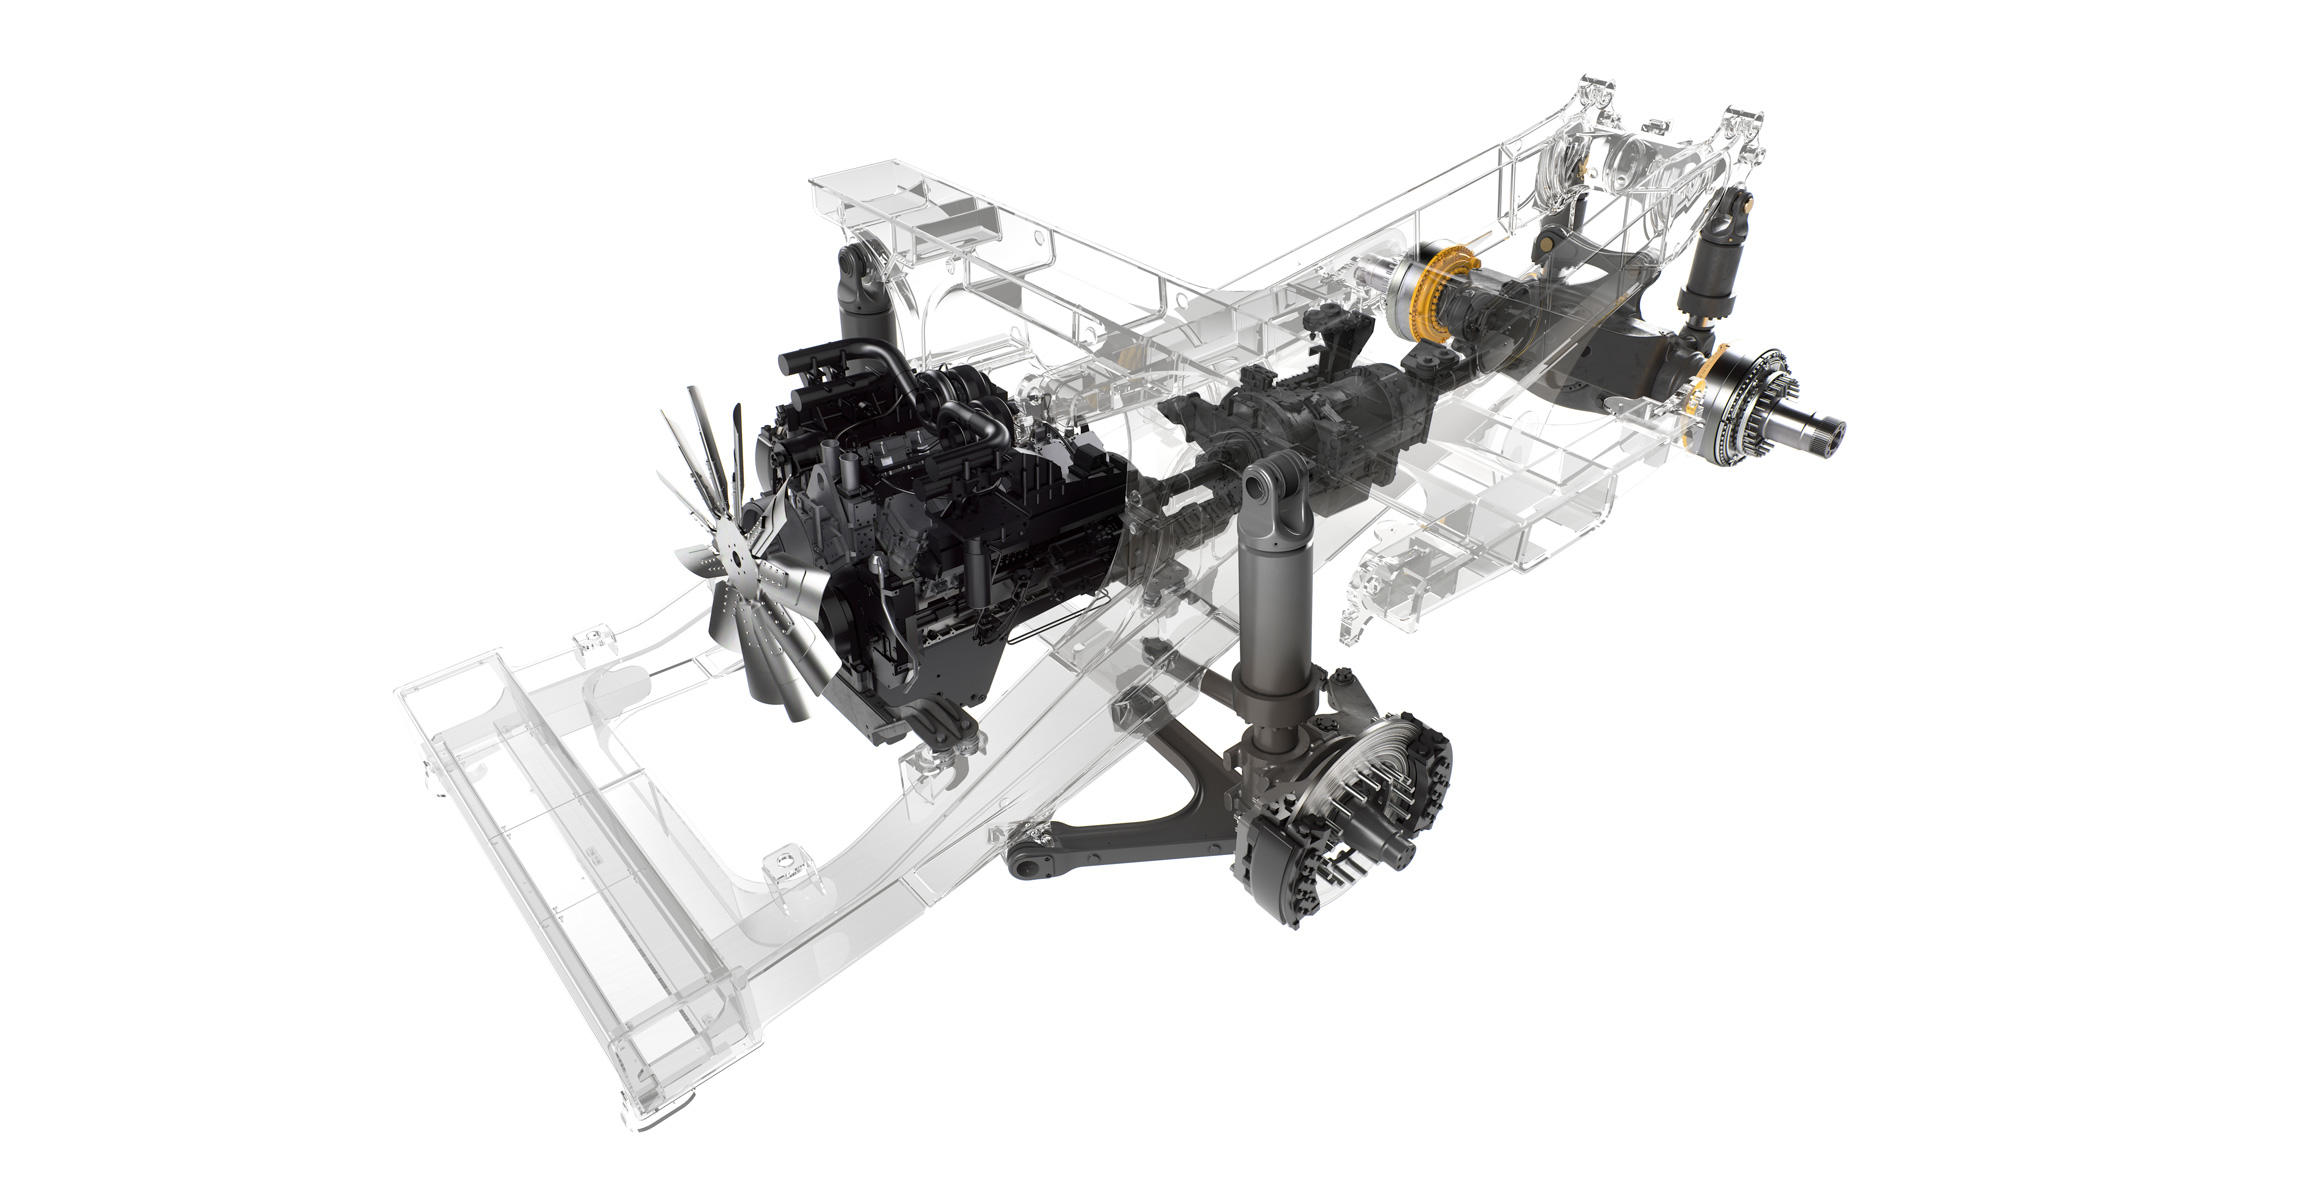 Volvo R100E Rigid Hauler's inside engine